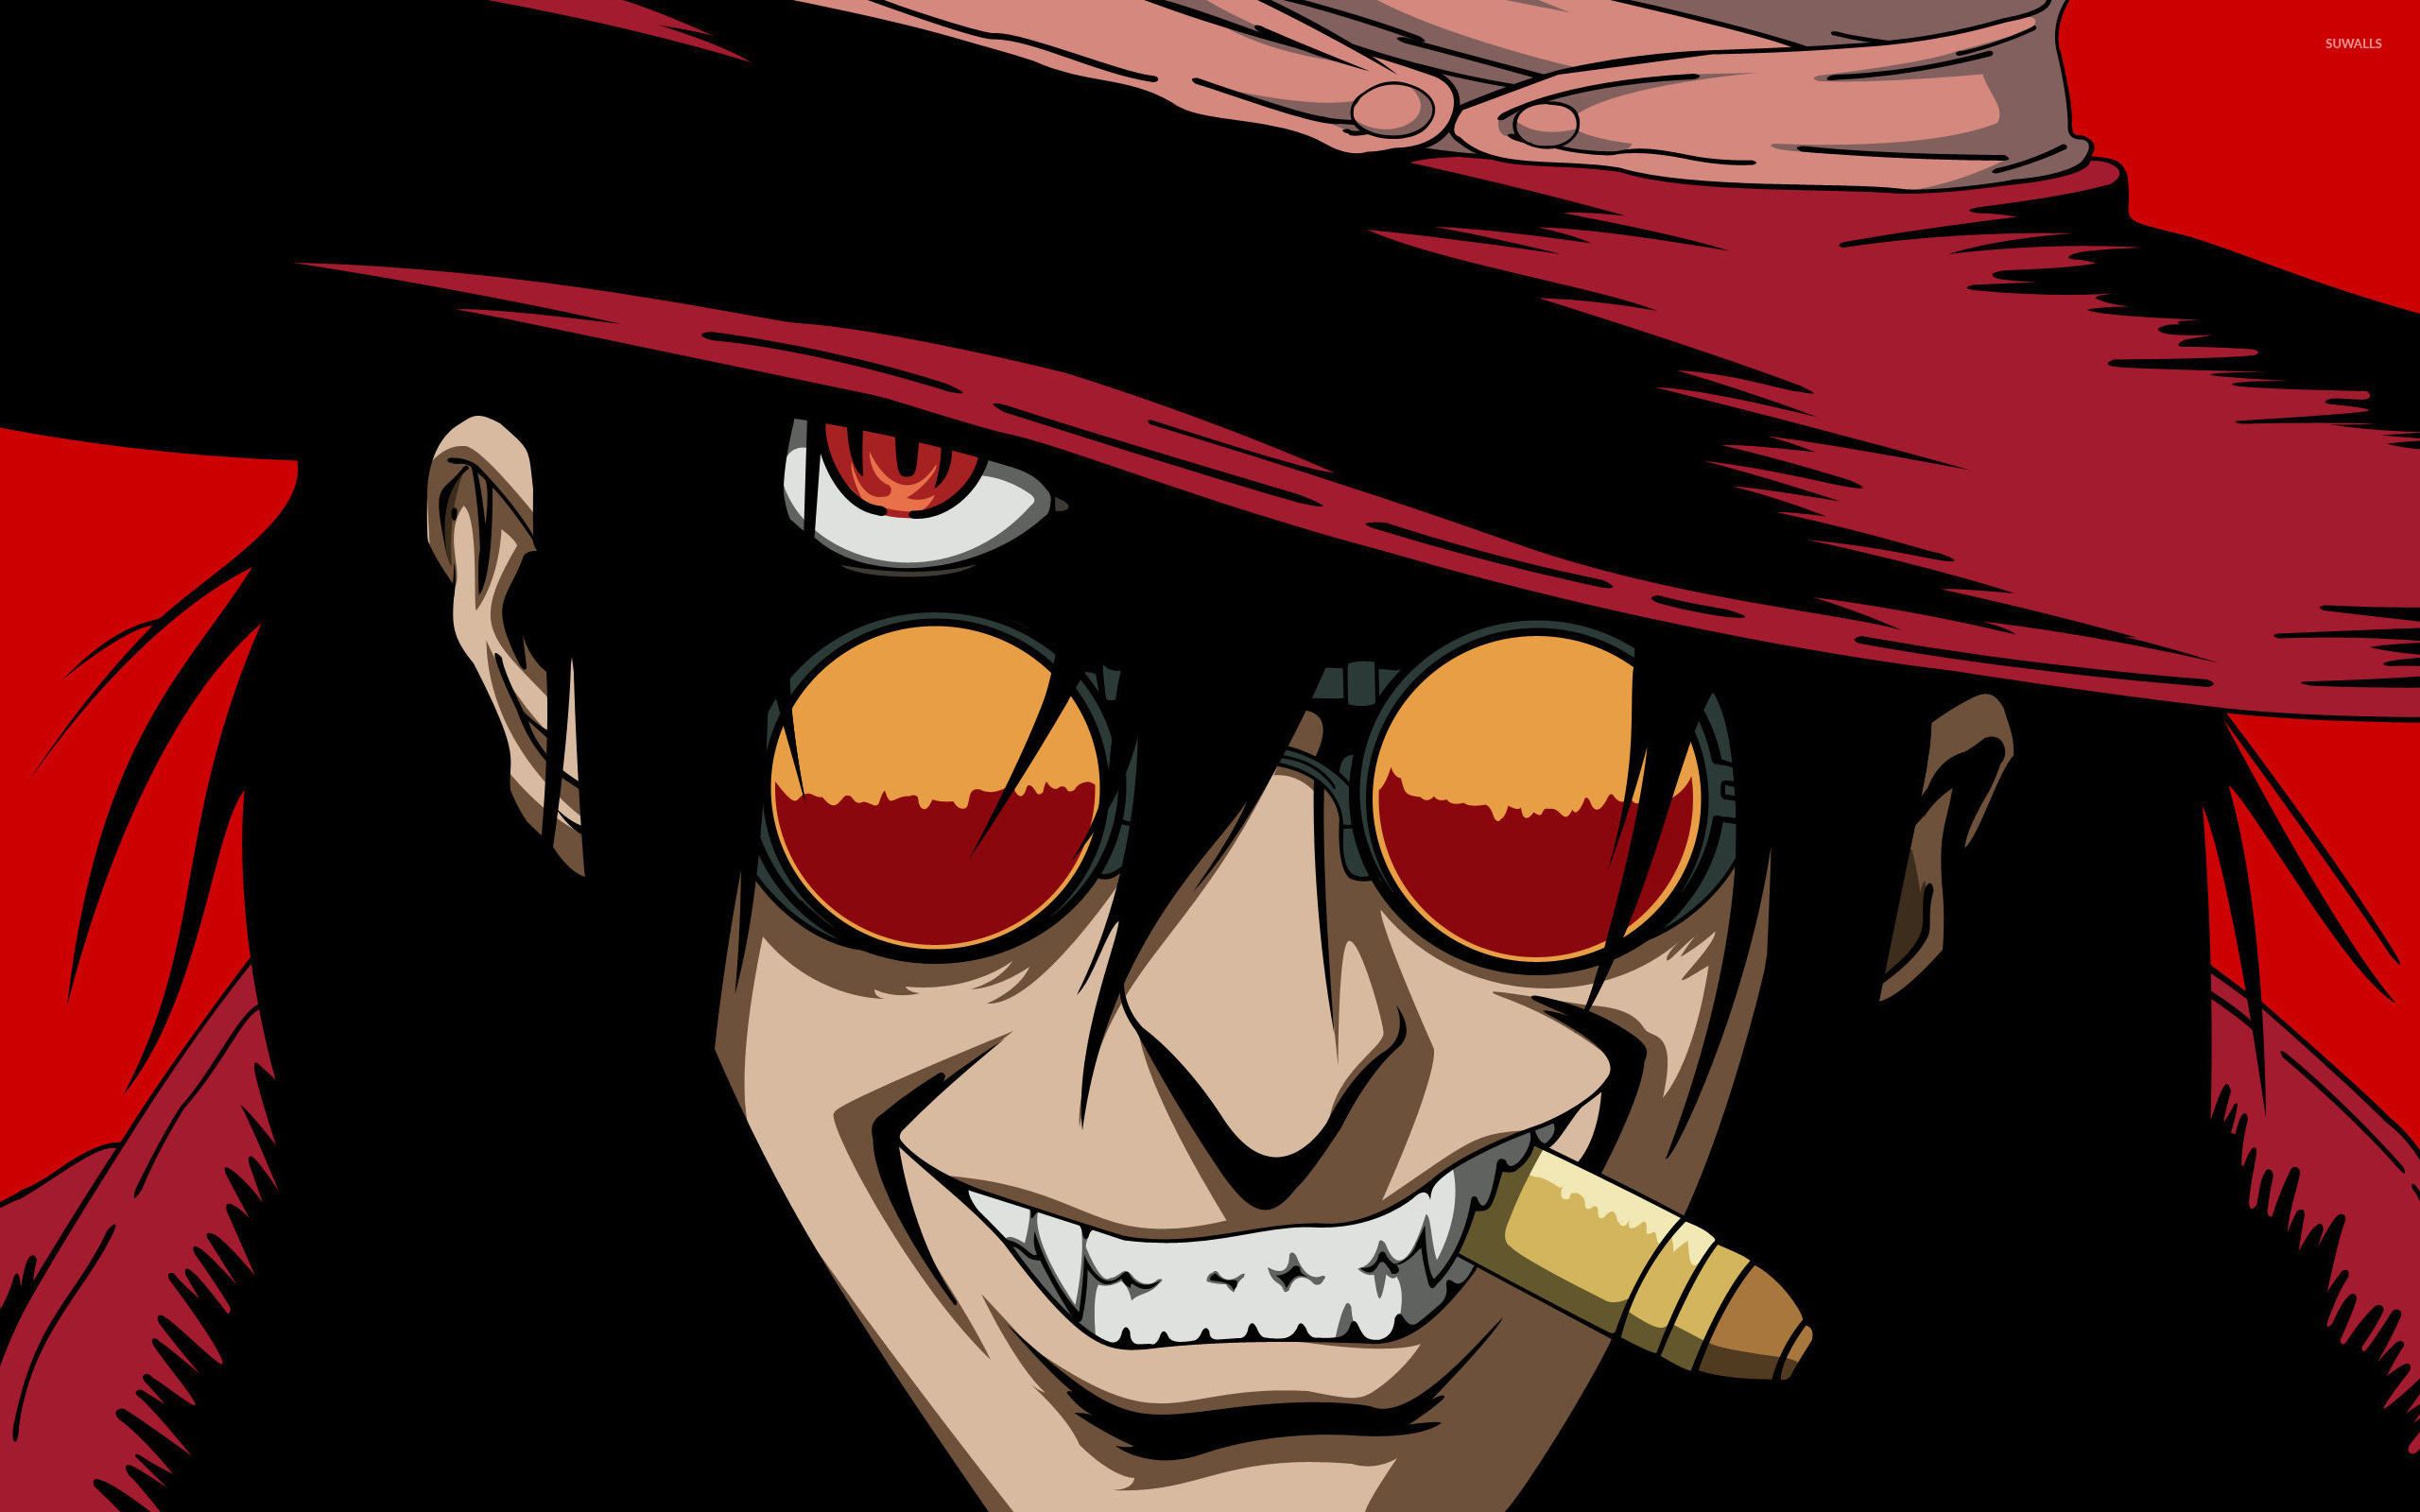 Hellsing alucard wallpaper wallpapertag - Anime hellsing wallpaper ...